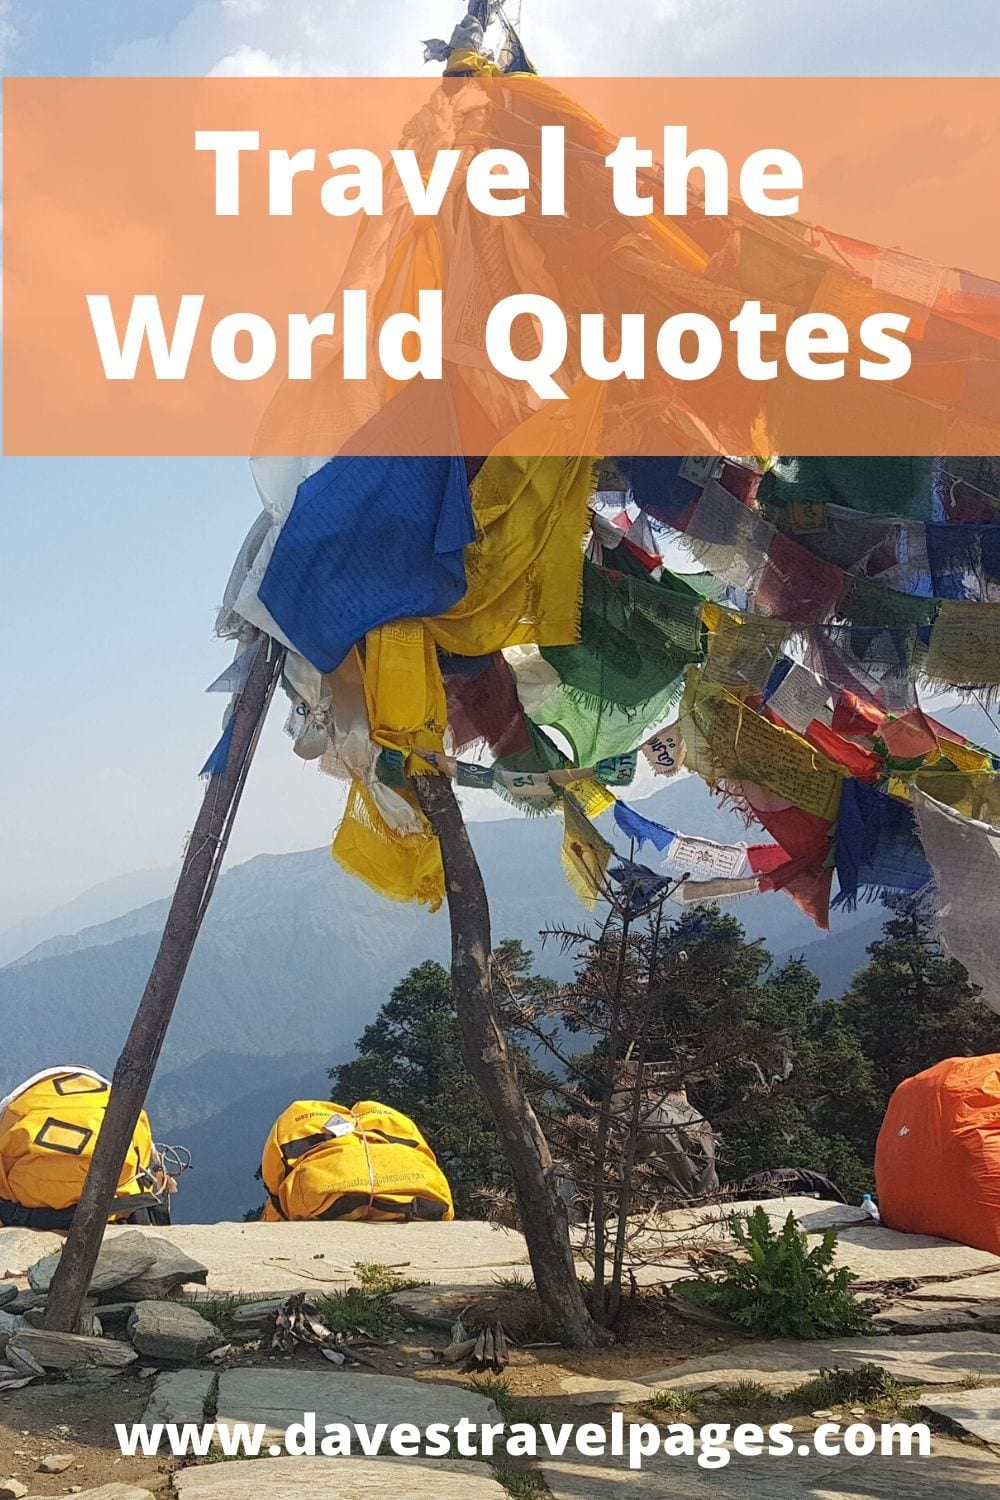 Top 50 Travel the World quotes